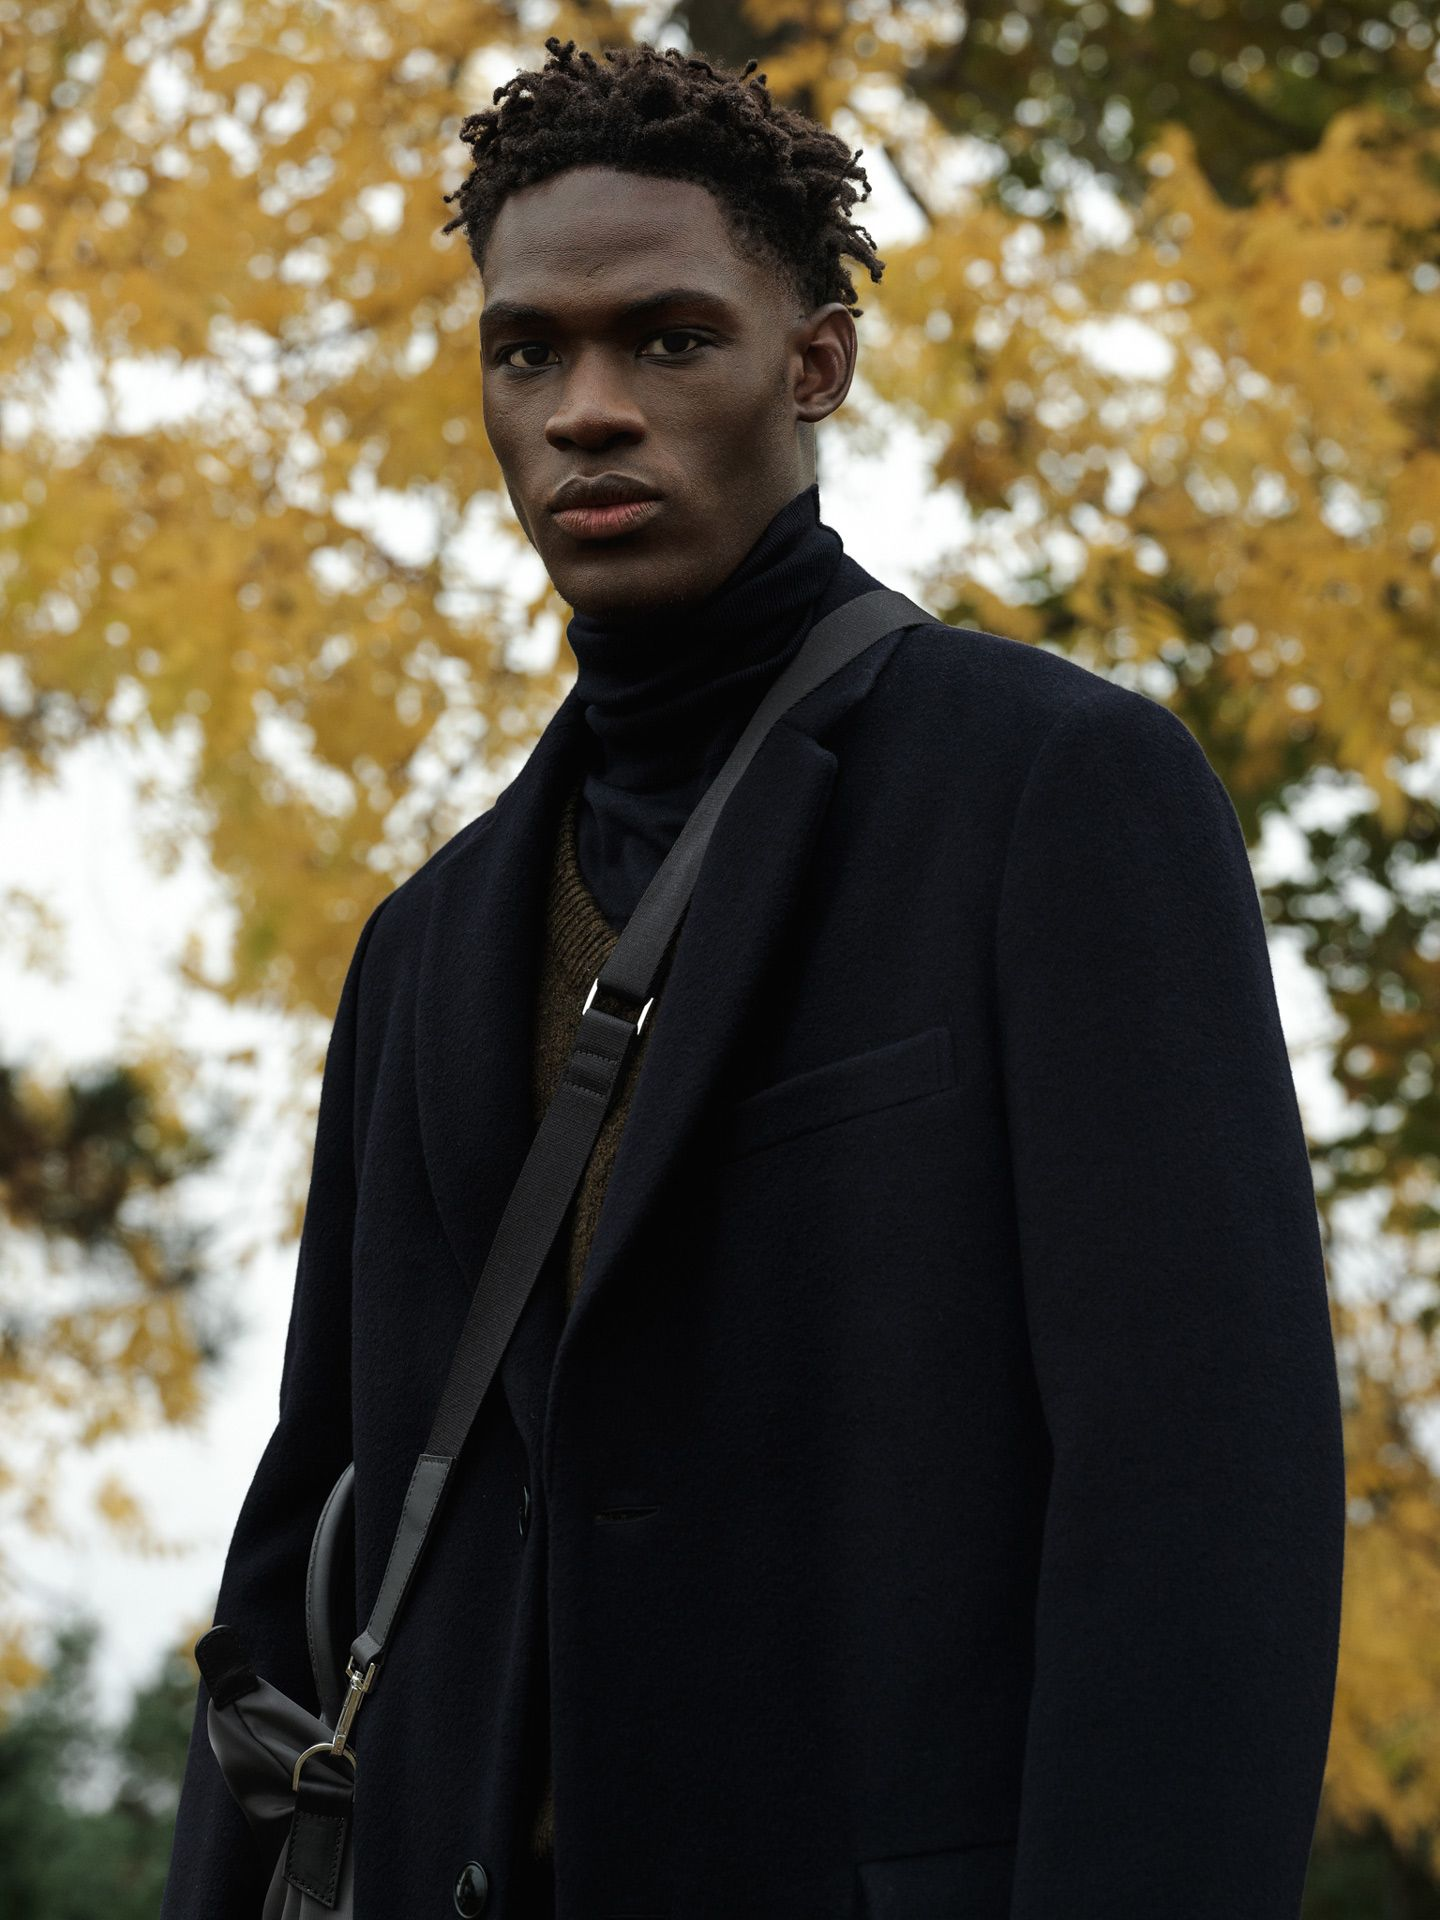 black male model wearing all black photographed by Alexi Hobbs for Want Les Essentiels pre-Autumn Winter 2019 collection